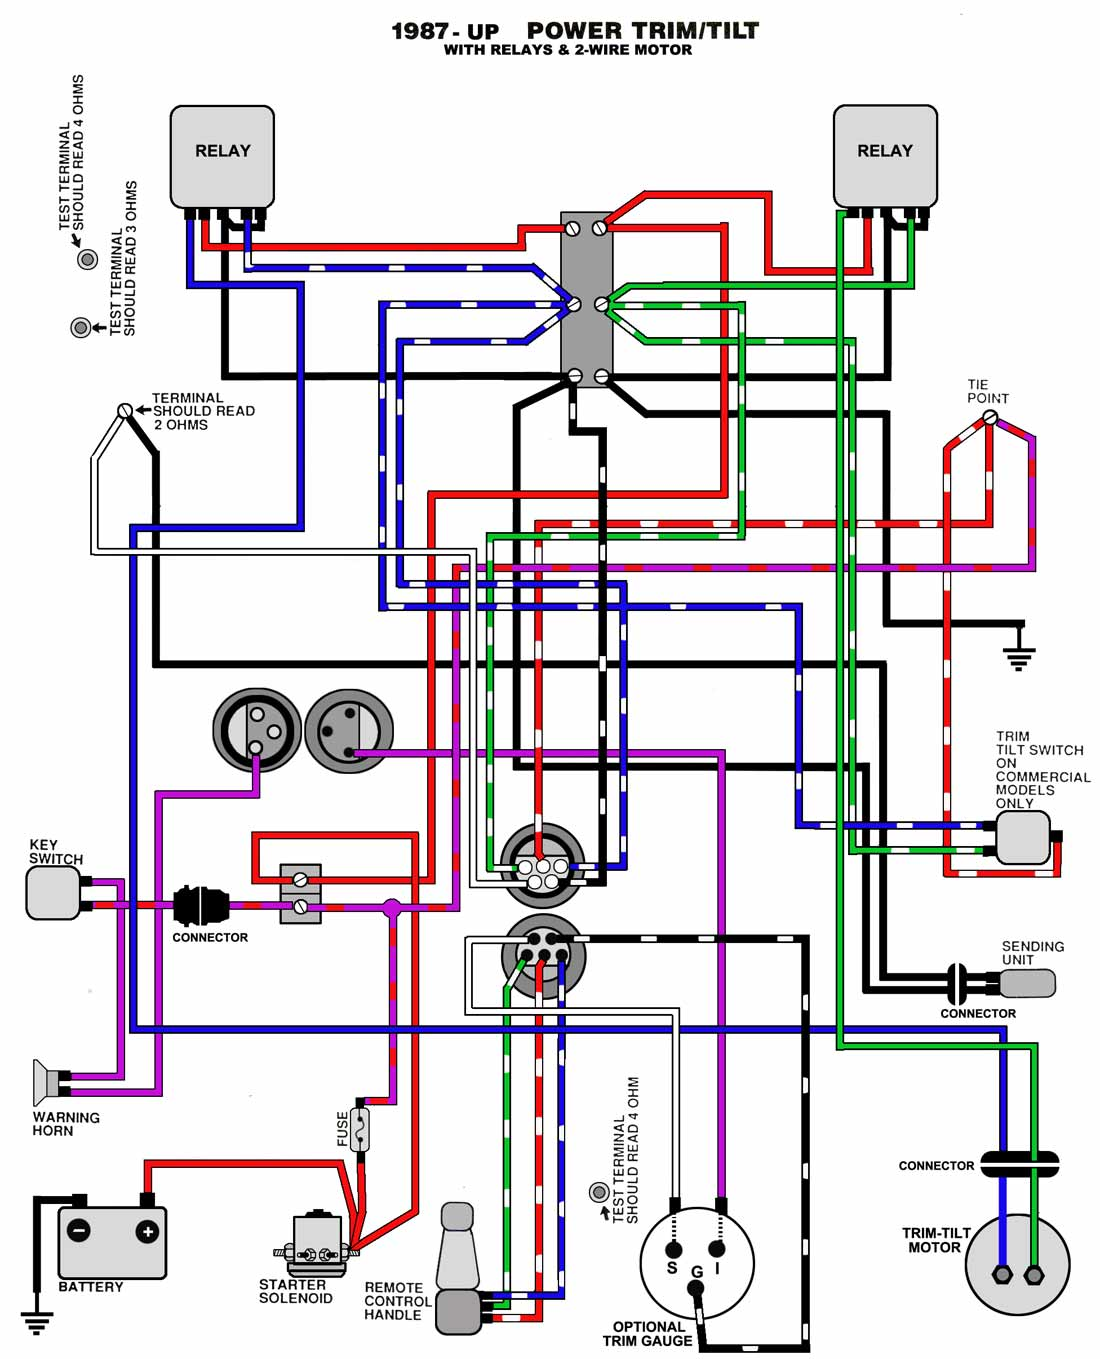 Mercury Outboard Power Trim Wiring Diagram : mercury, outboard, power, wiring, diagram, Common, Outboard, Motor, System, Wiring, Diagrams, Mastertech, Marine